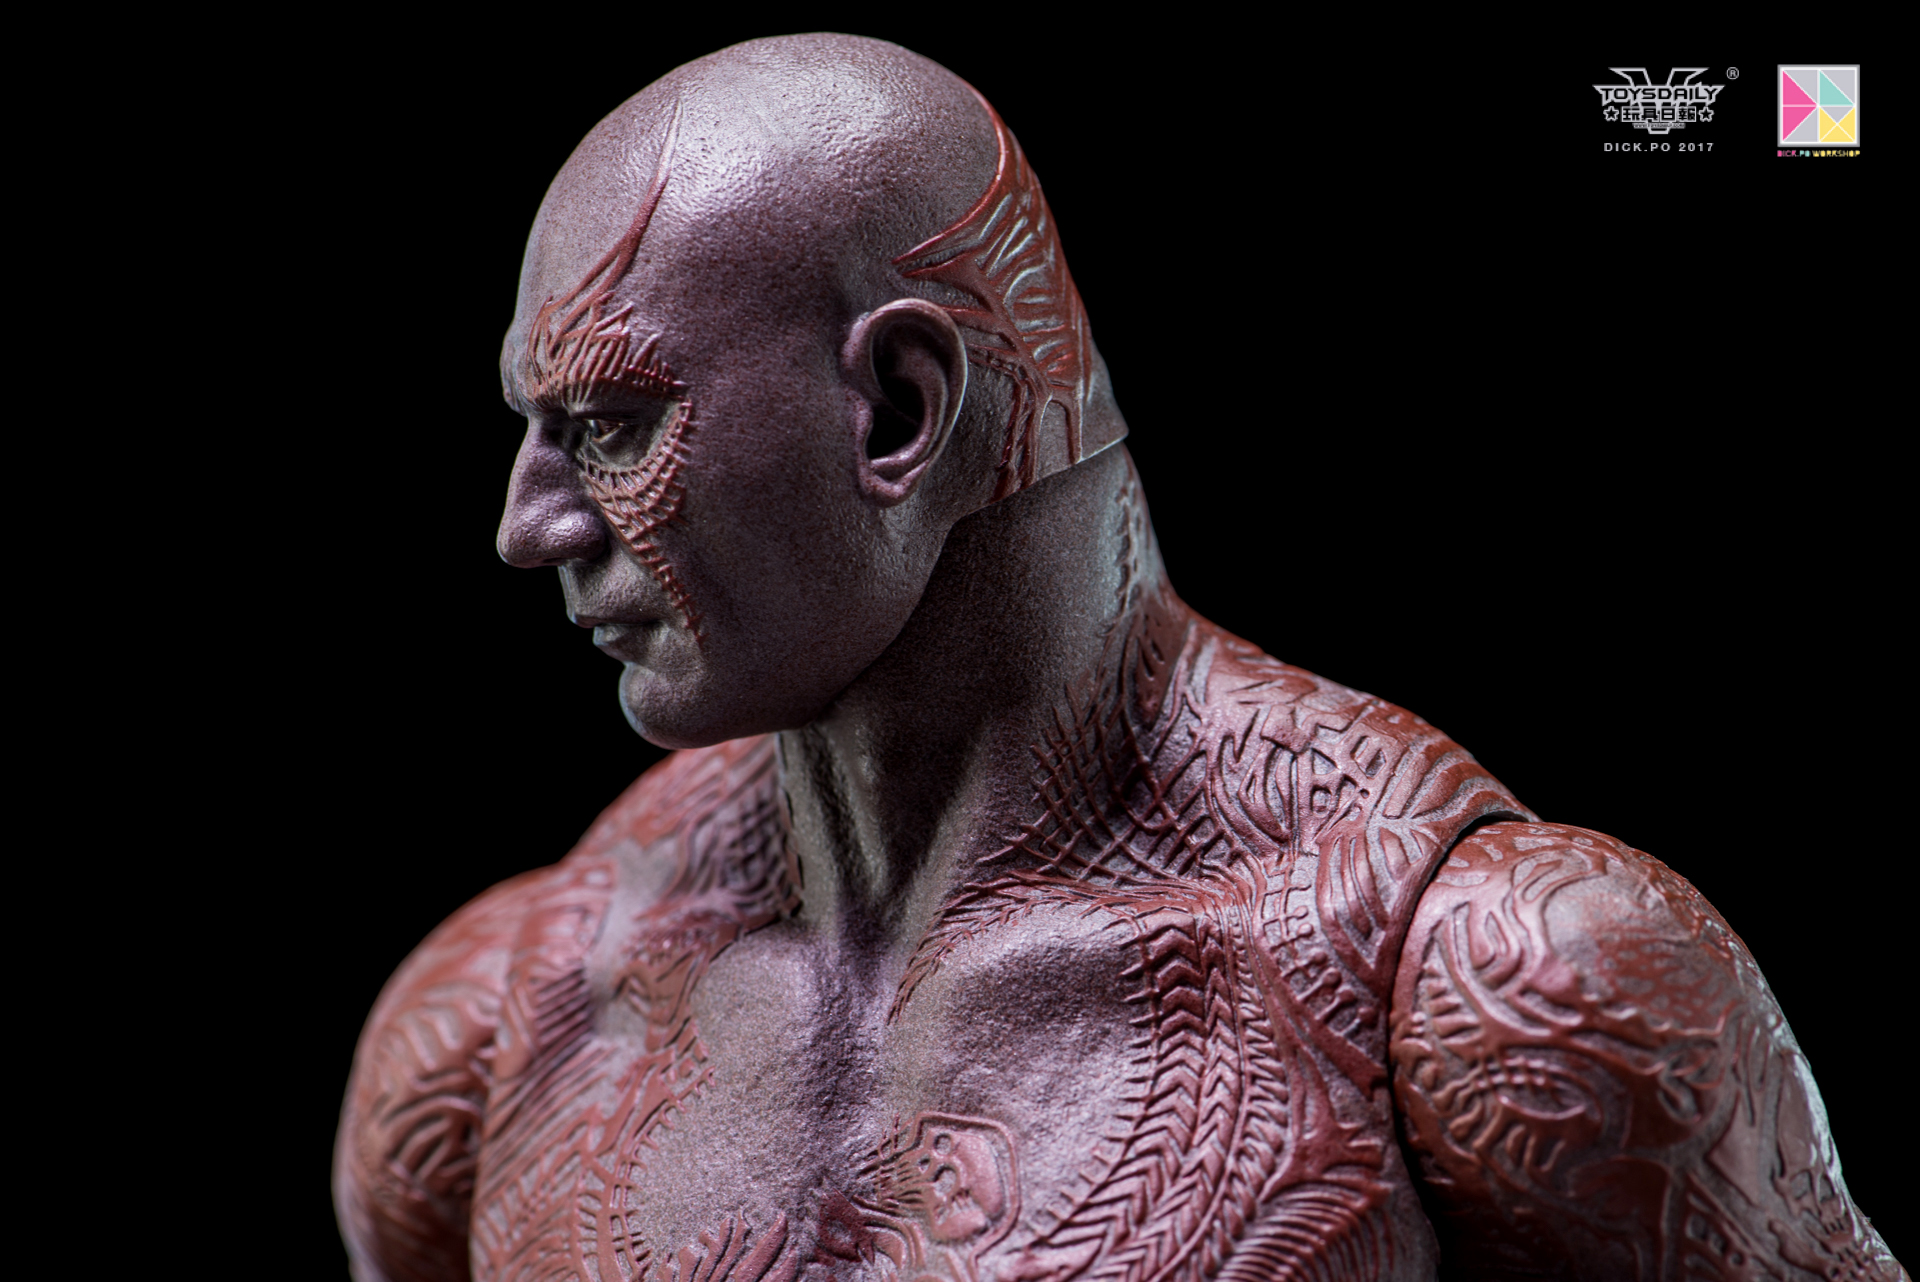 toysdaily_dick.po_Hottoys_DARX-20.jpg